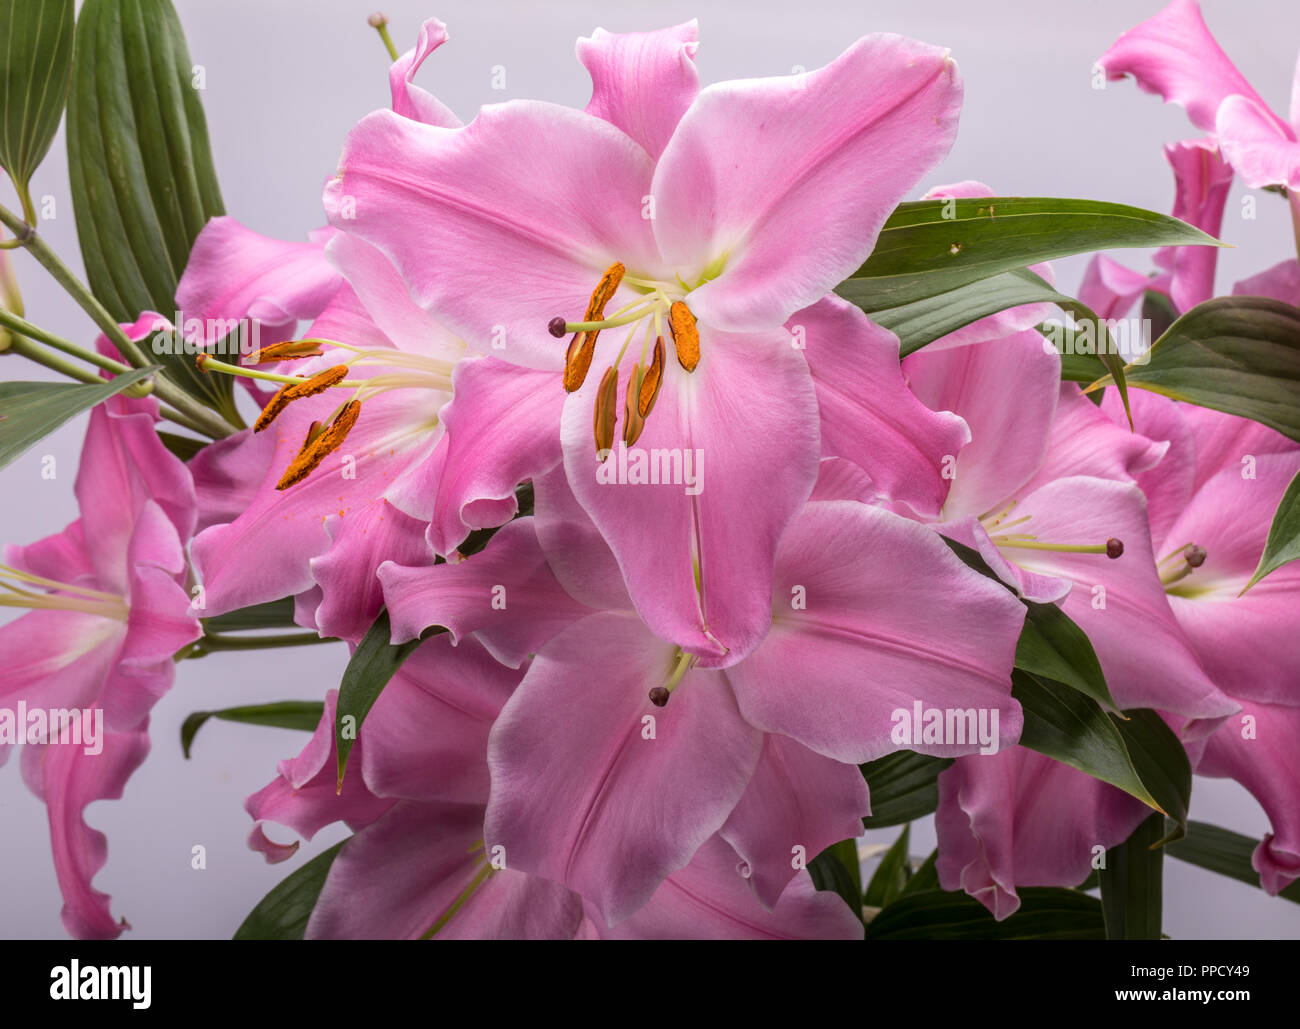 Magic lily stock photos magic lily stock images alamy close up of pink liles flowers common names for species in this genus include izmirmasajfo